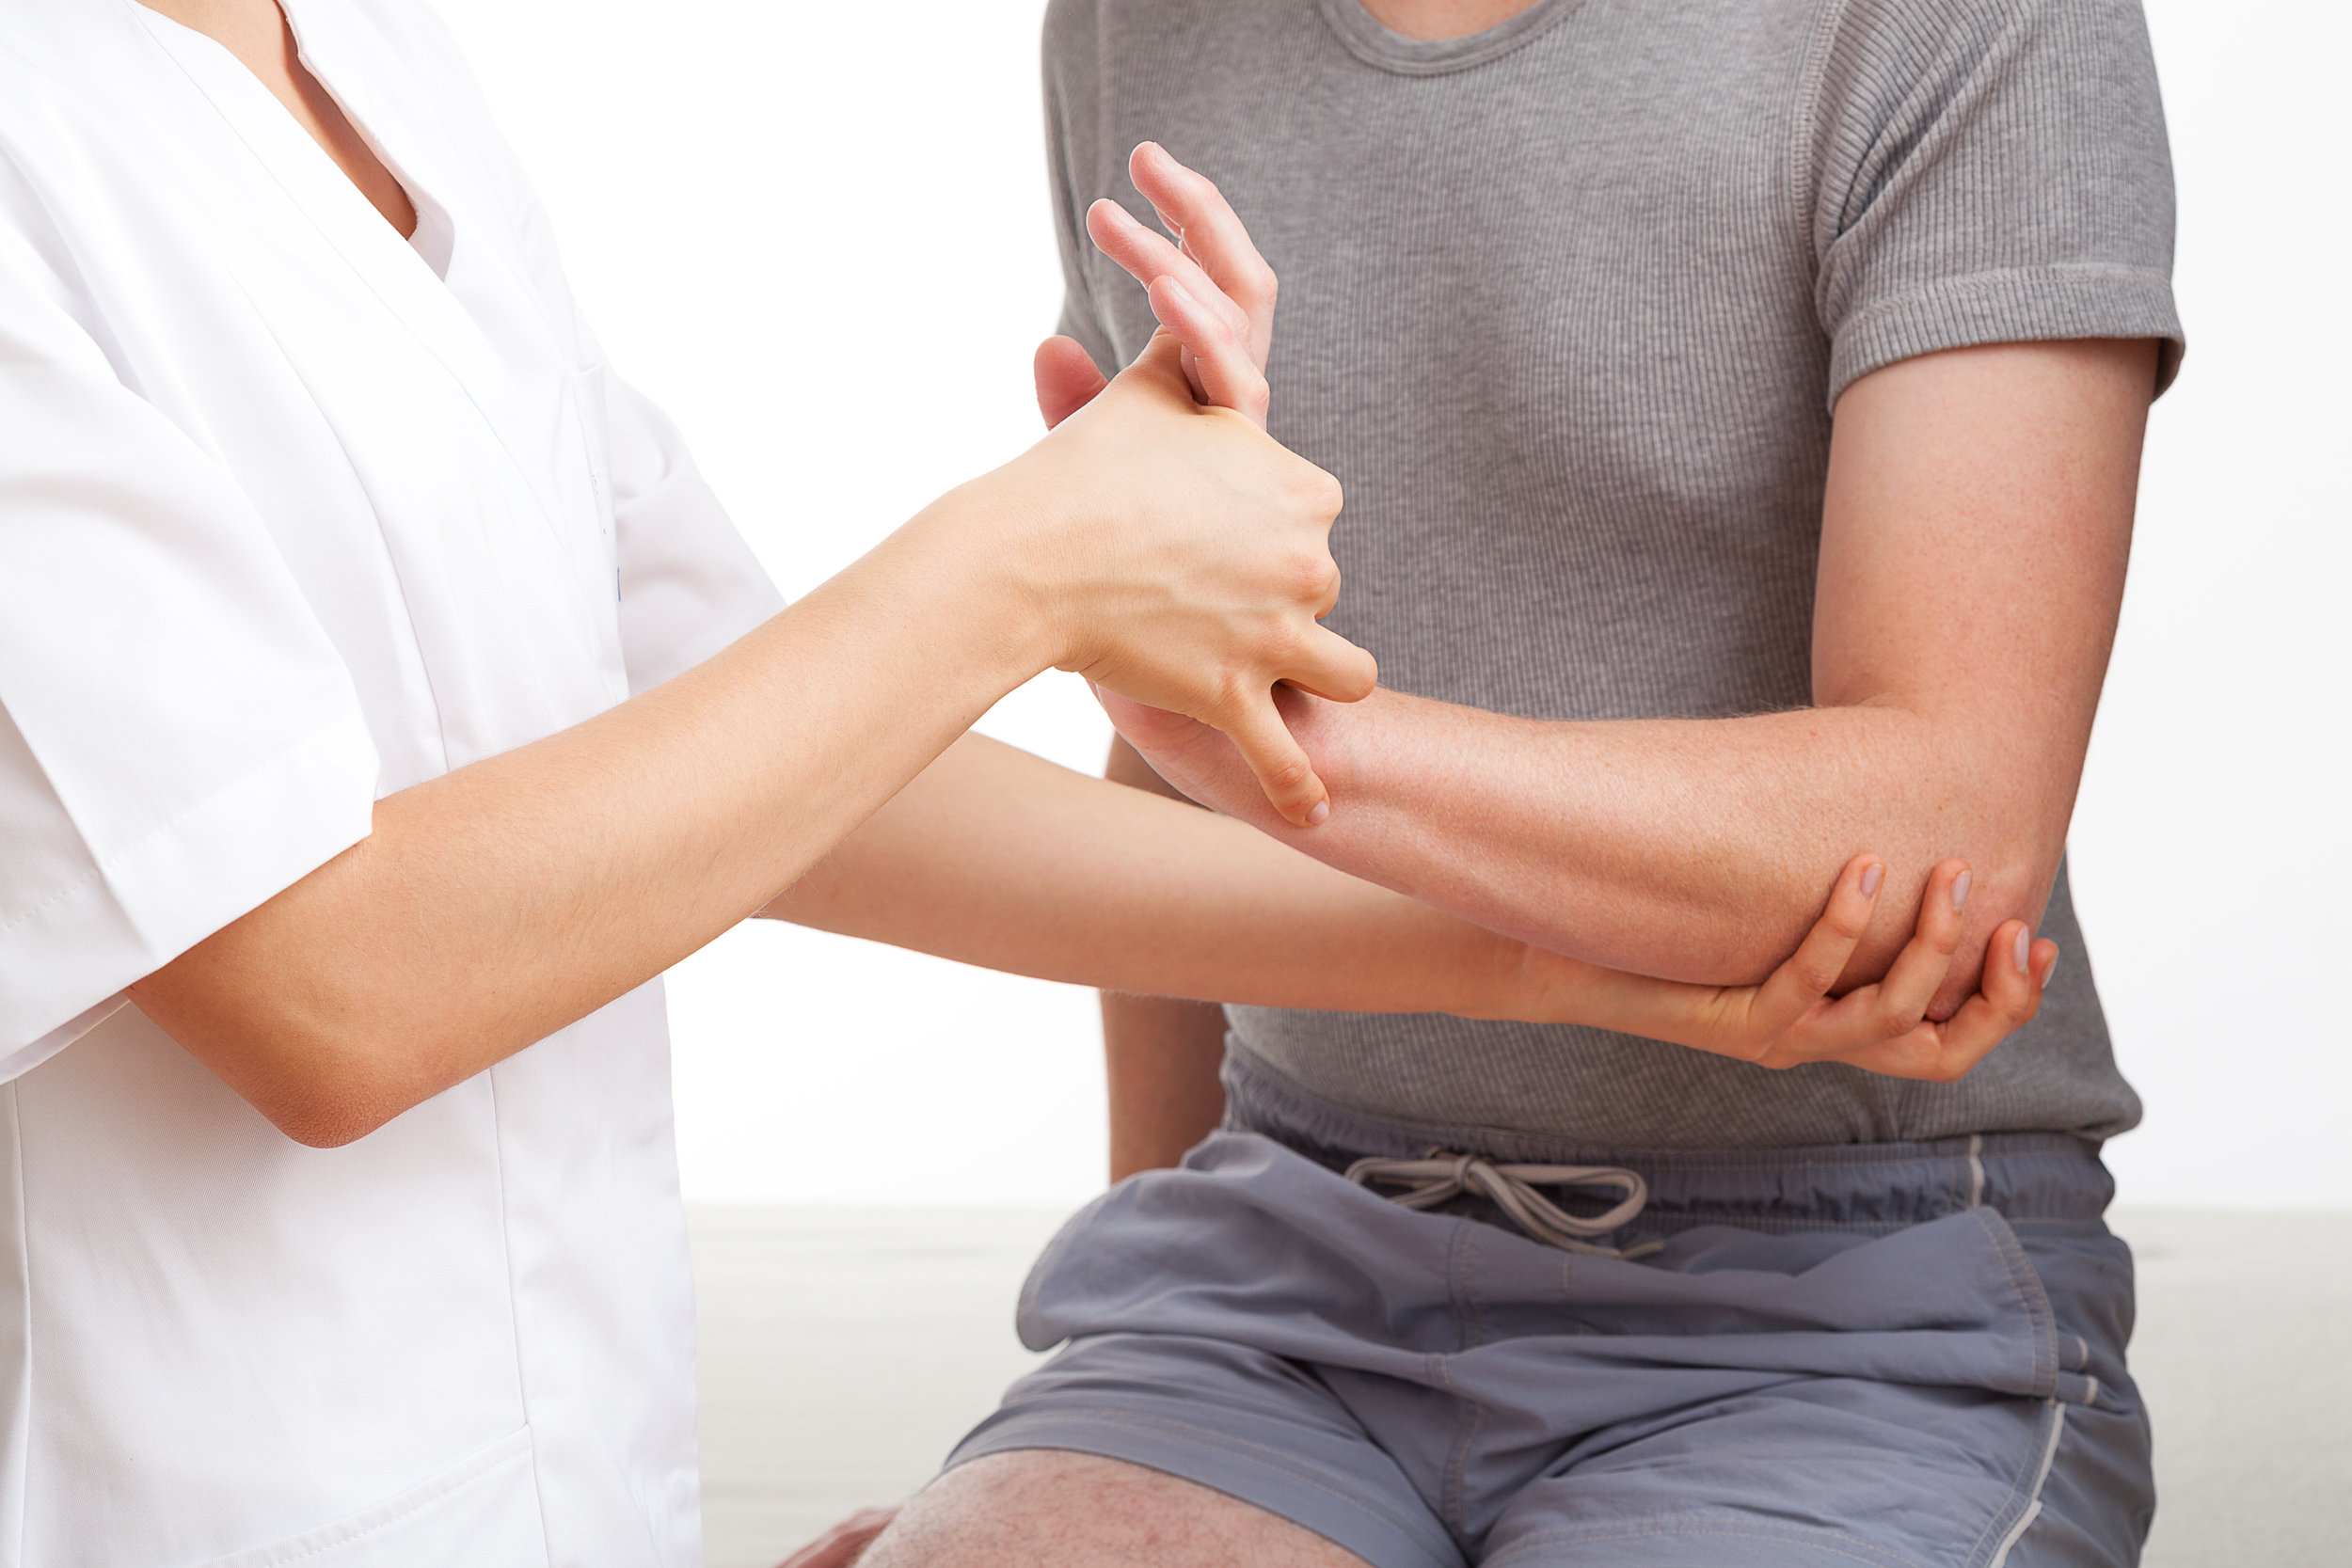 Hand and Occupation Therapy